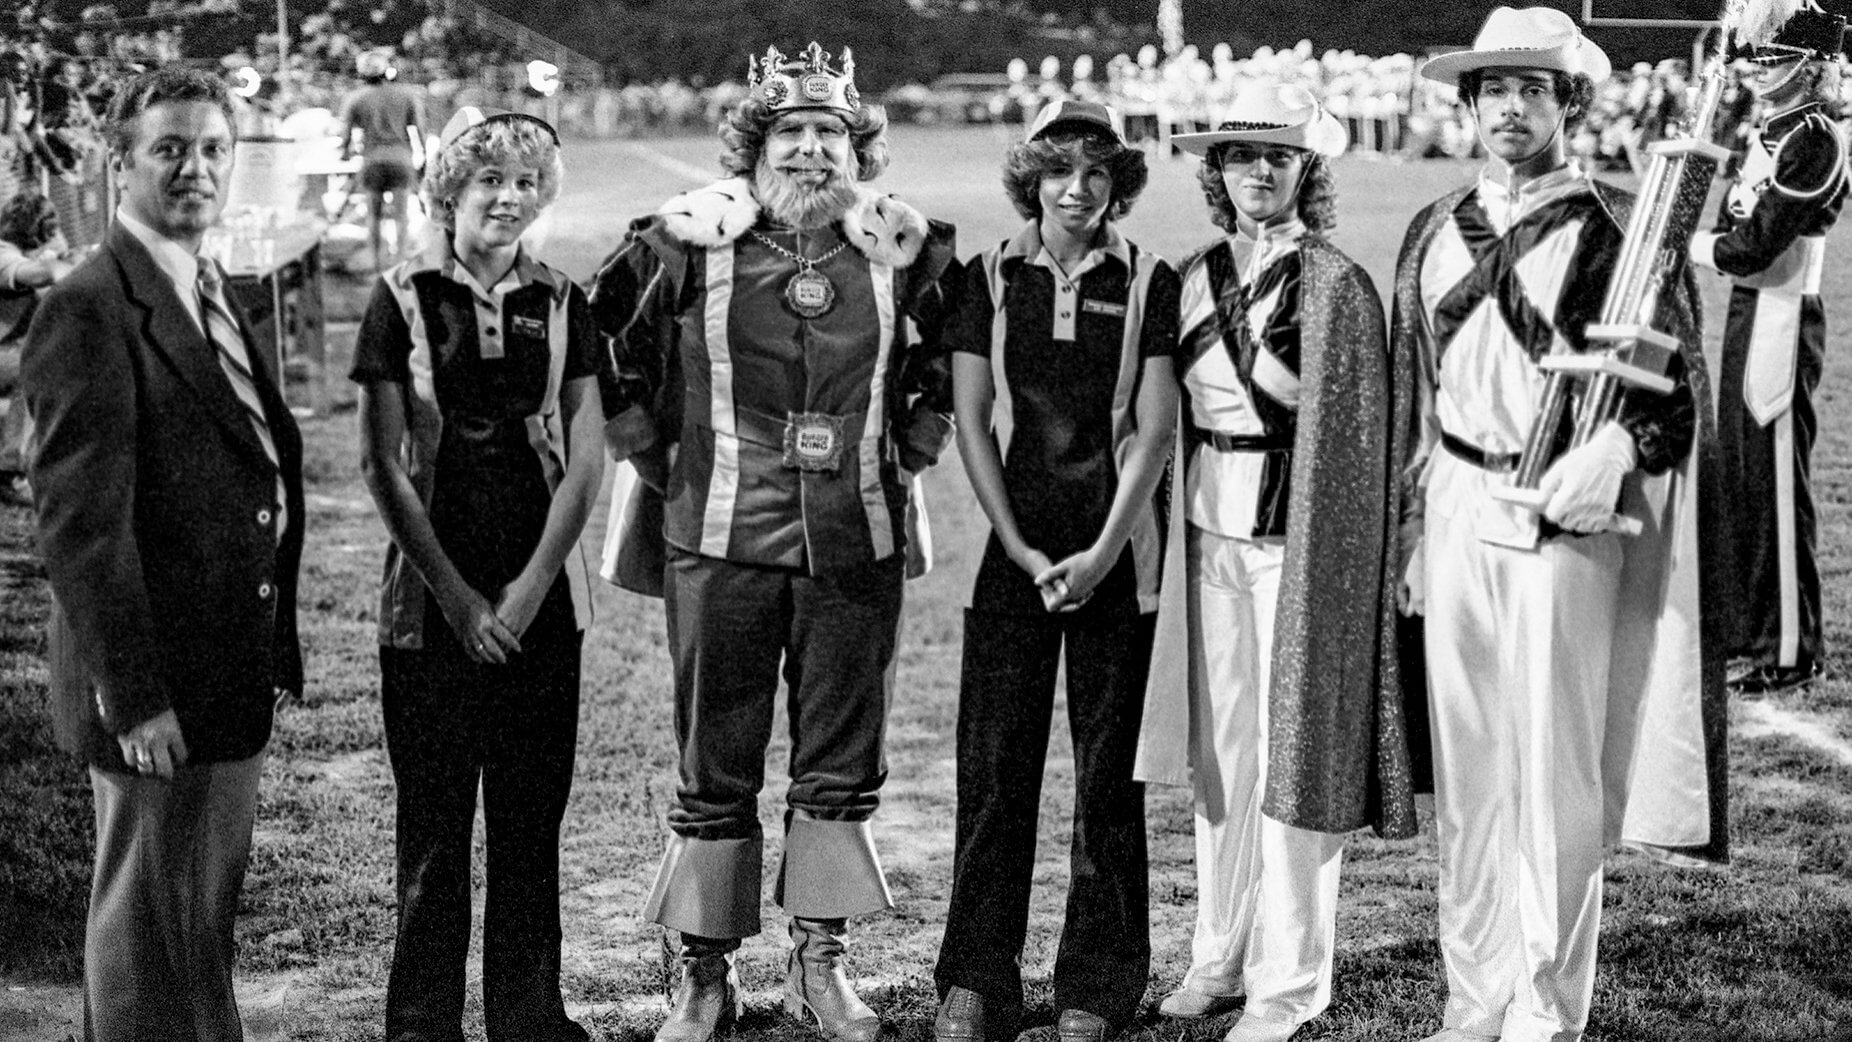 A look back through 40 years of DCI East